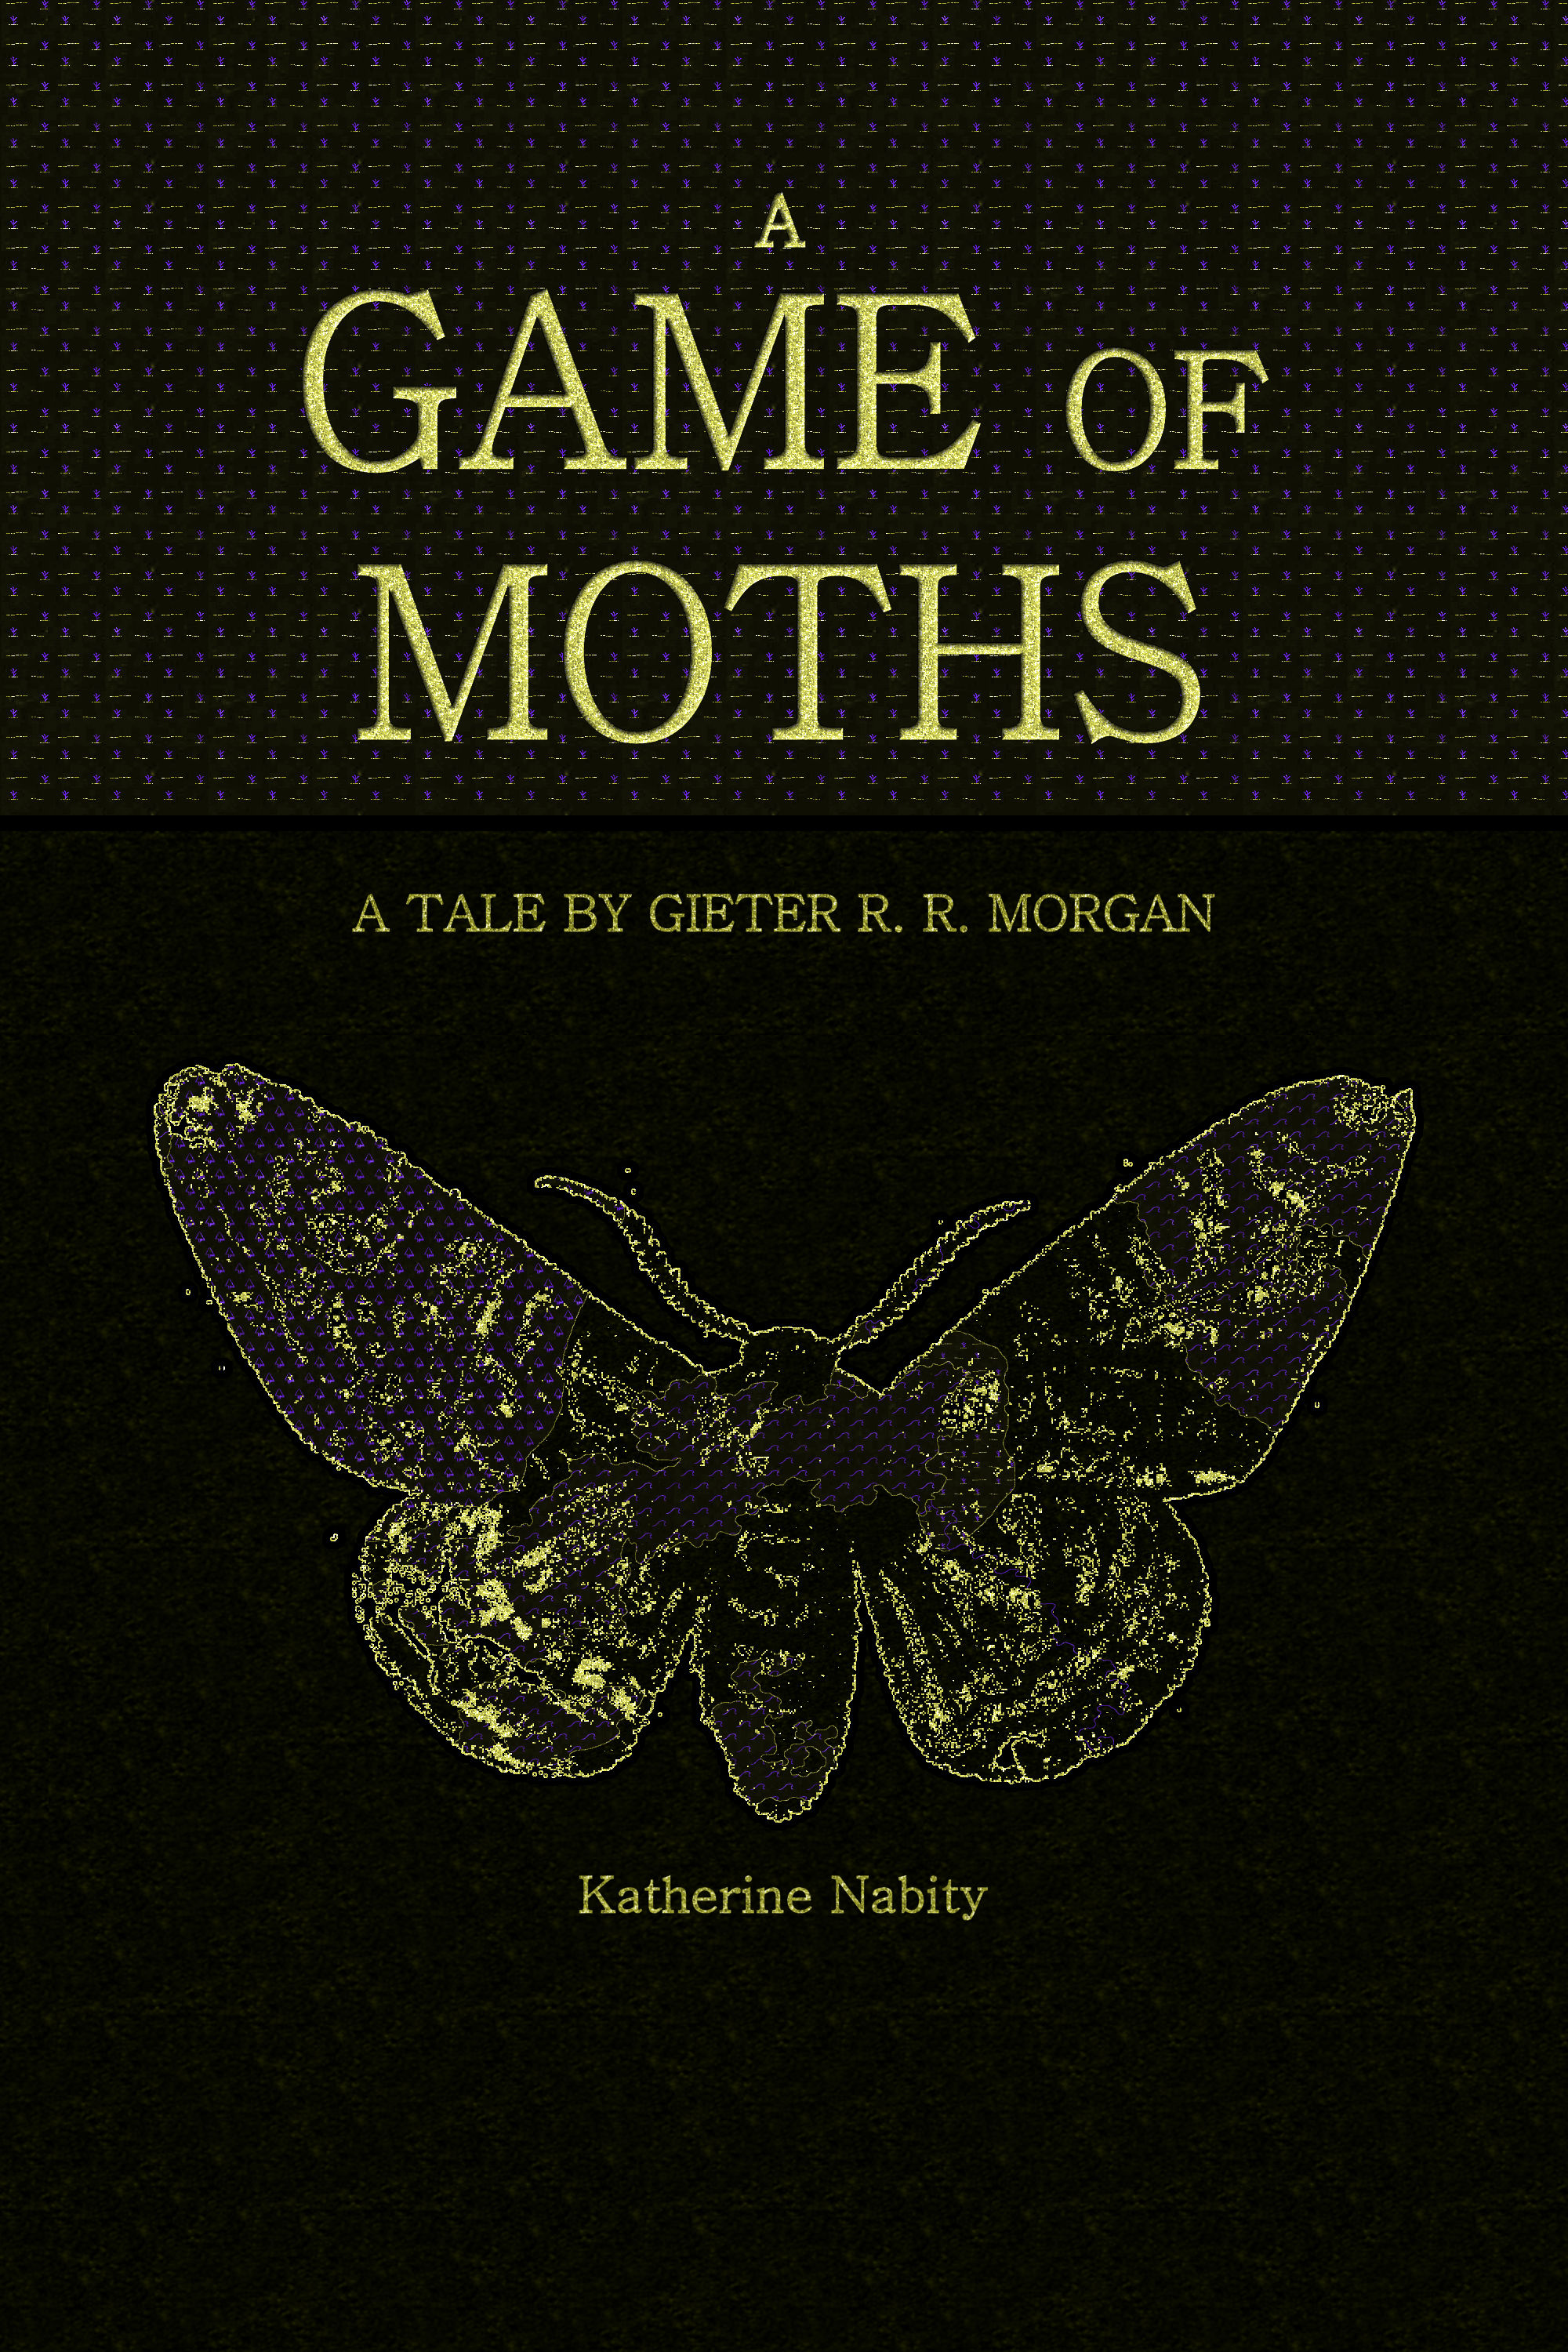 A Game of Moths